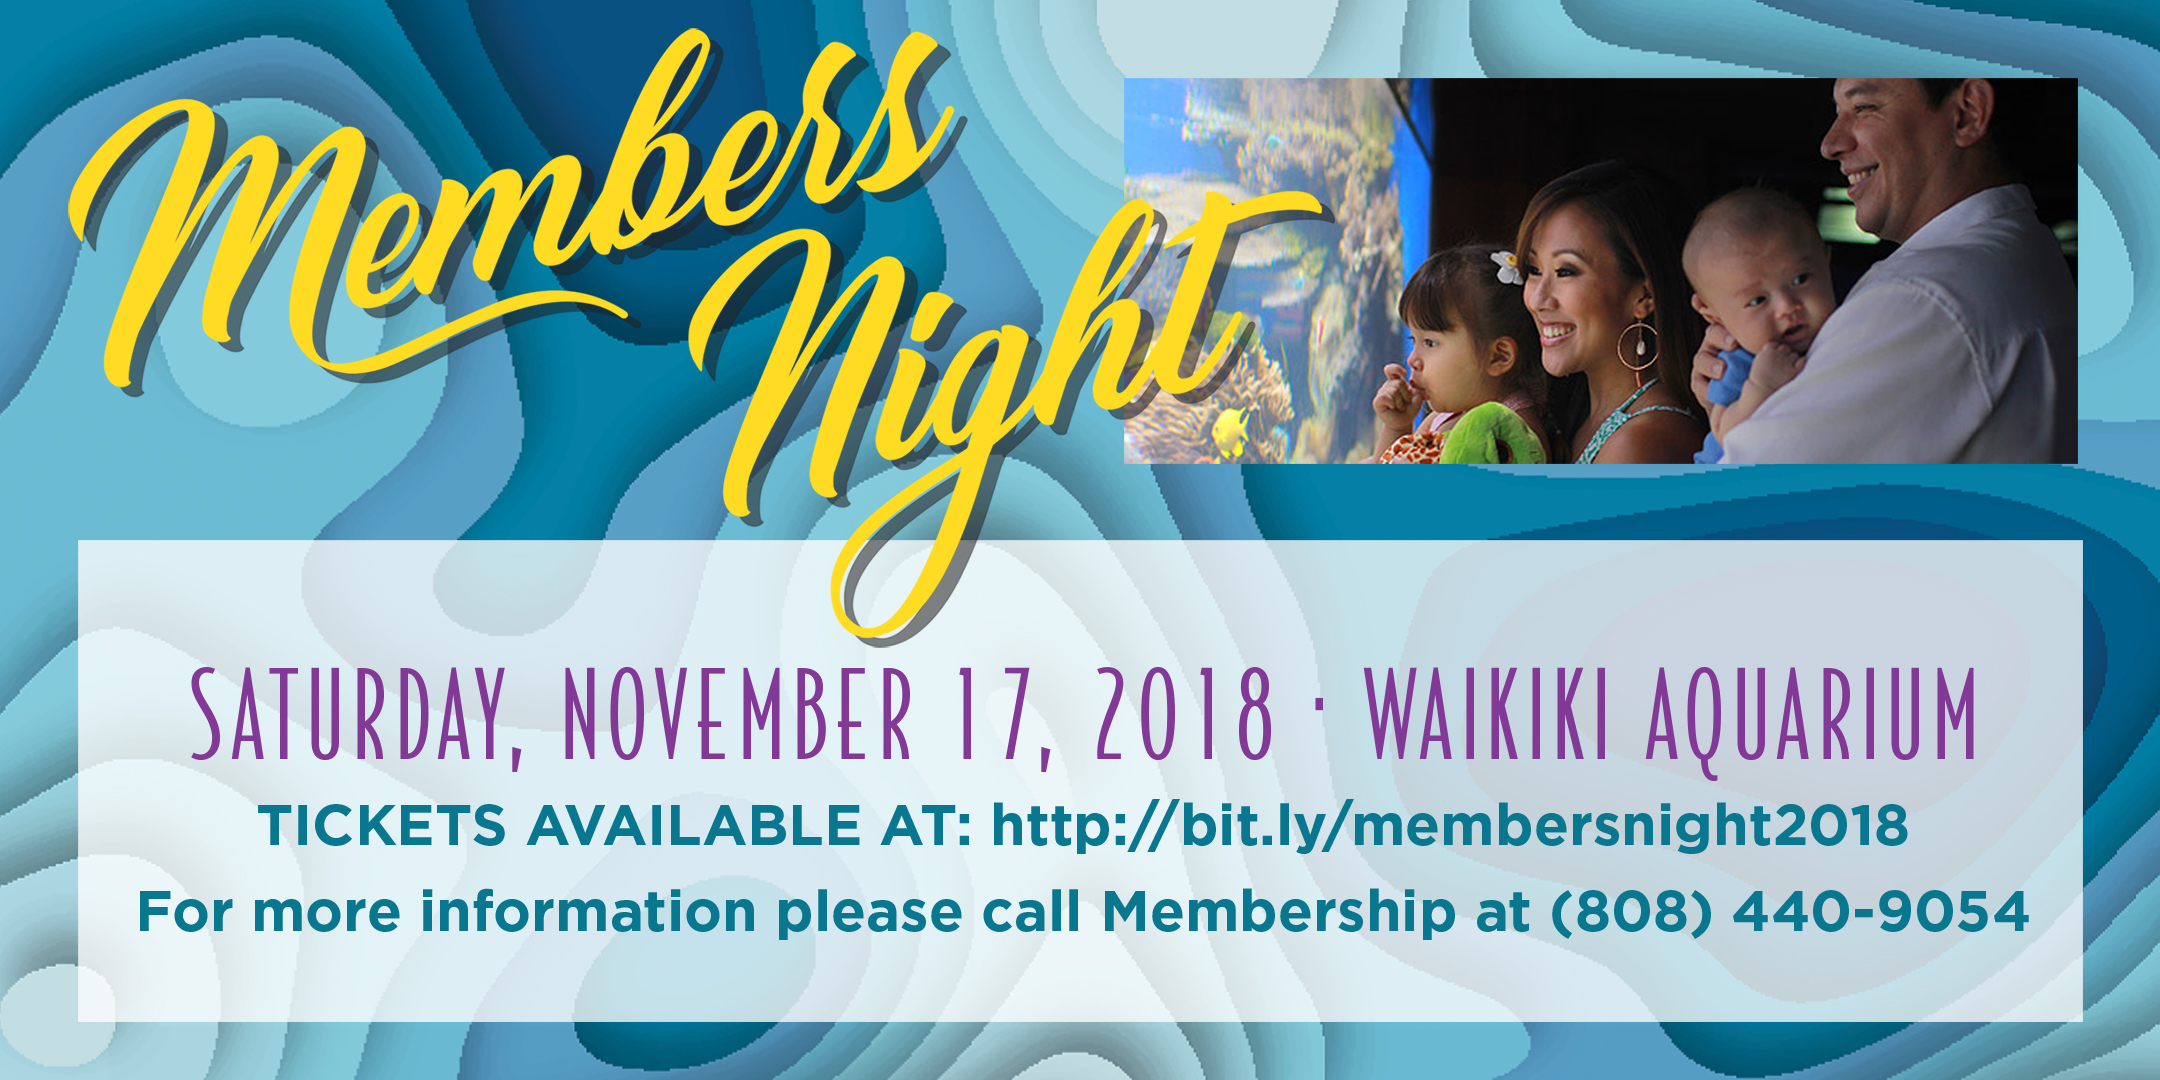 Members Night 2018 Banner Image